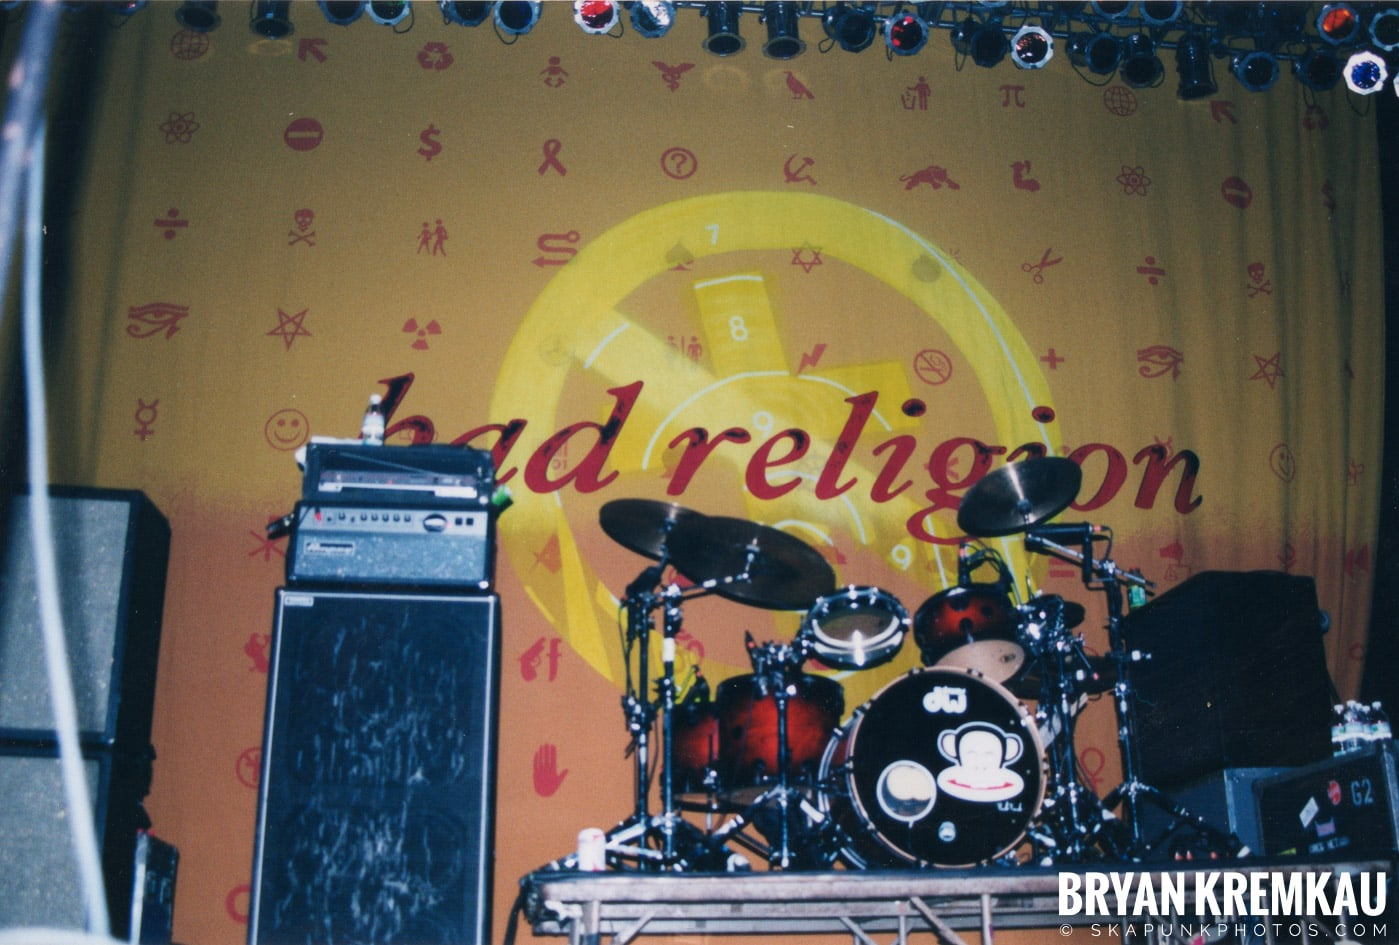 Bad Religion @ Roseland, NYC - 3.12.02 (17)